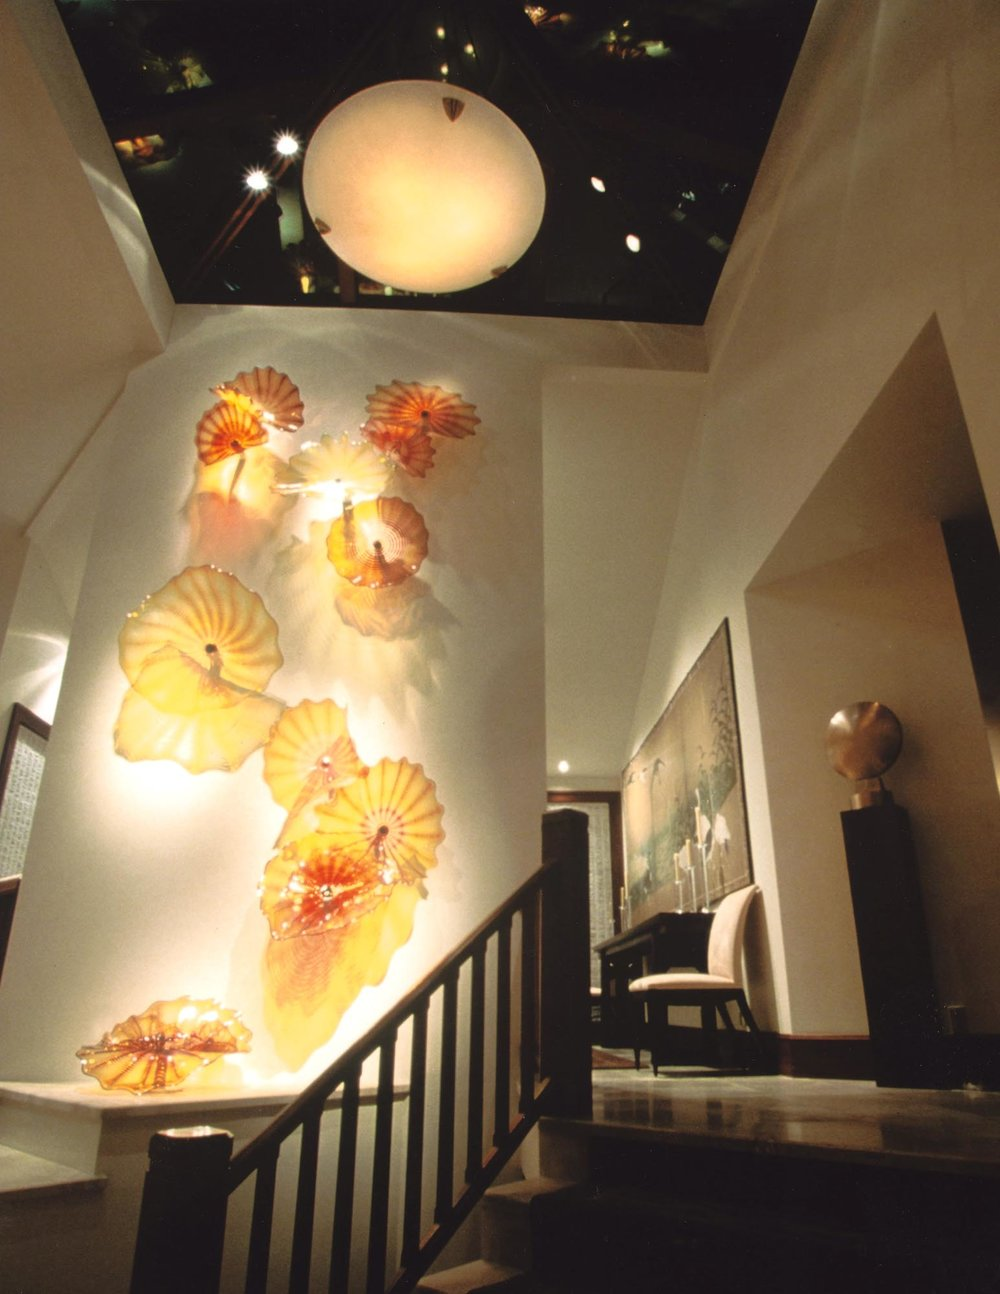 Commissioned glass installation by Dale Chihuly. Antique: 18th century Japanese screen. Sculpture by Manuel Izquierdo